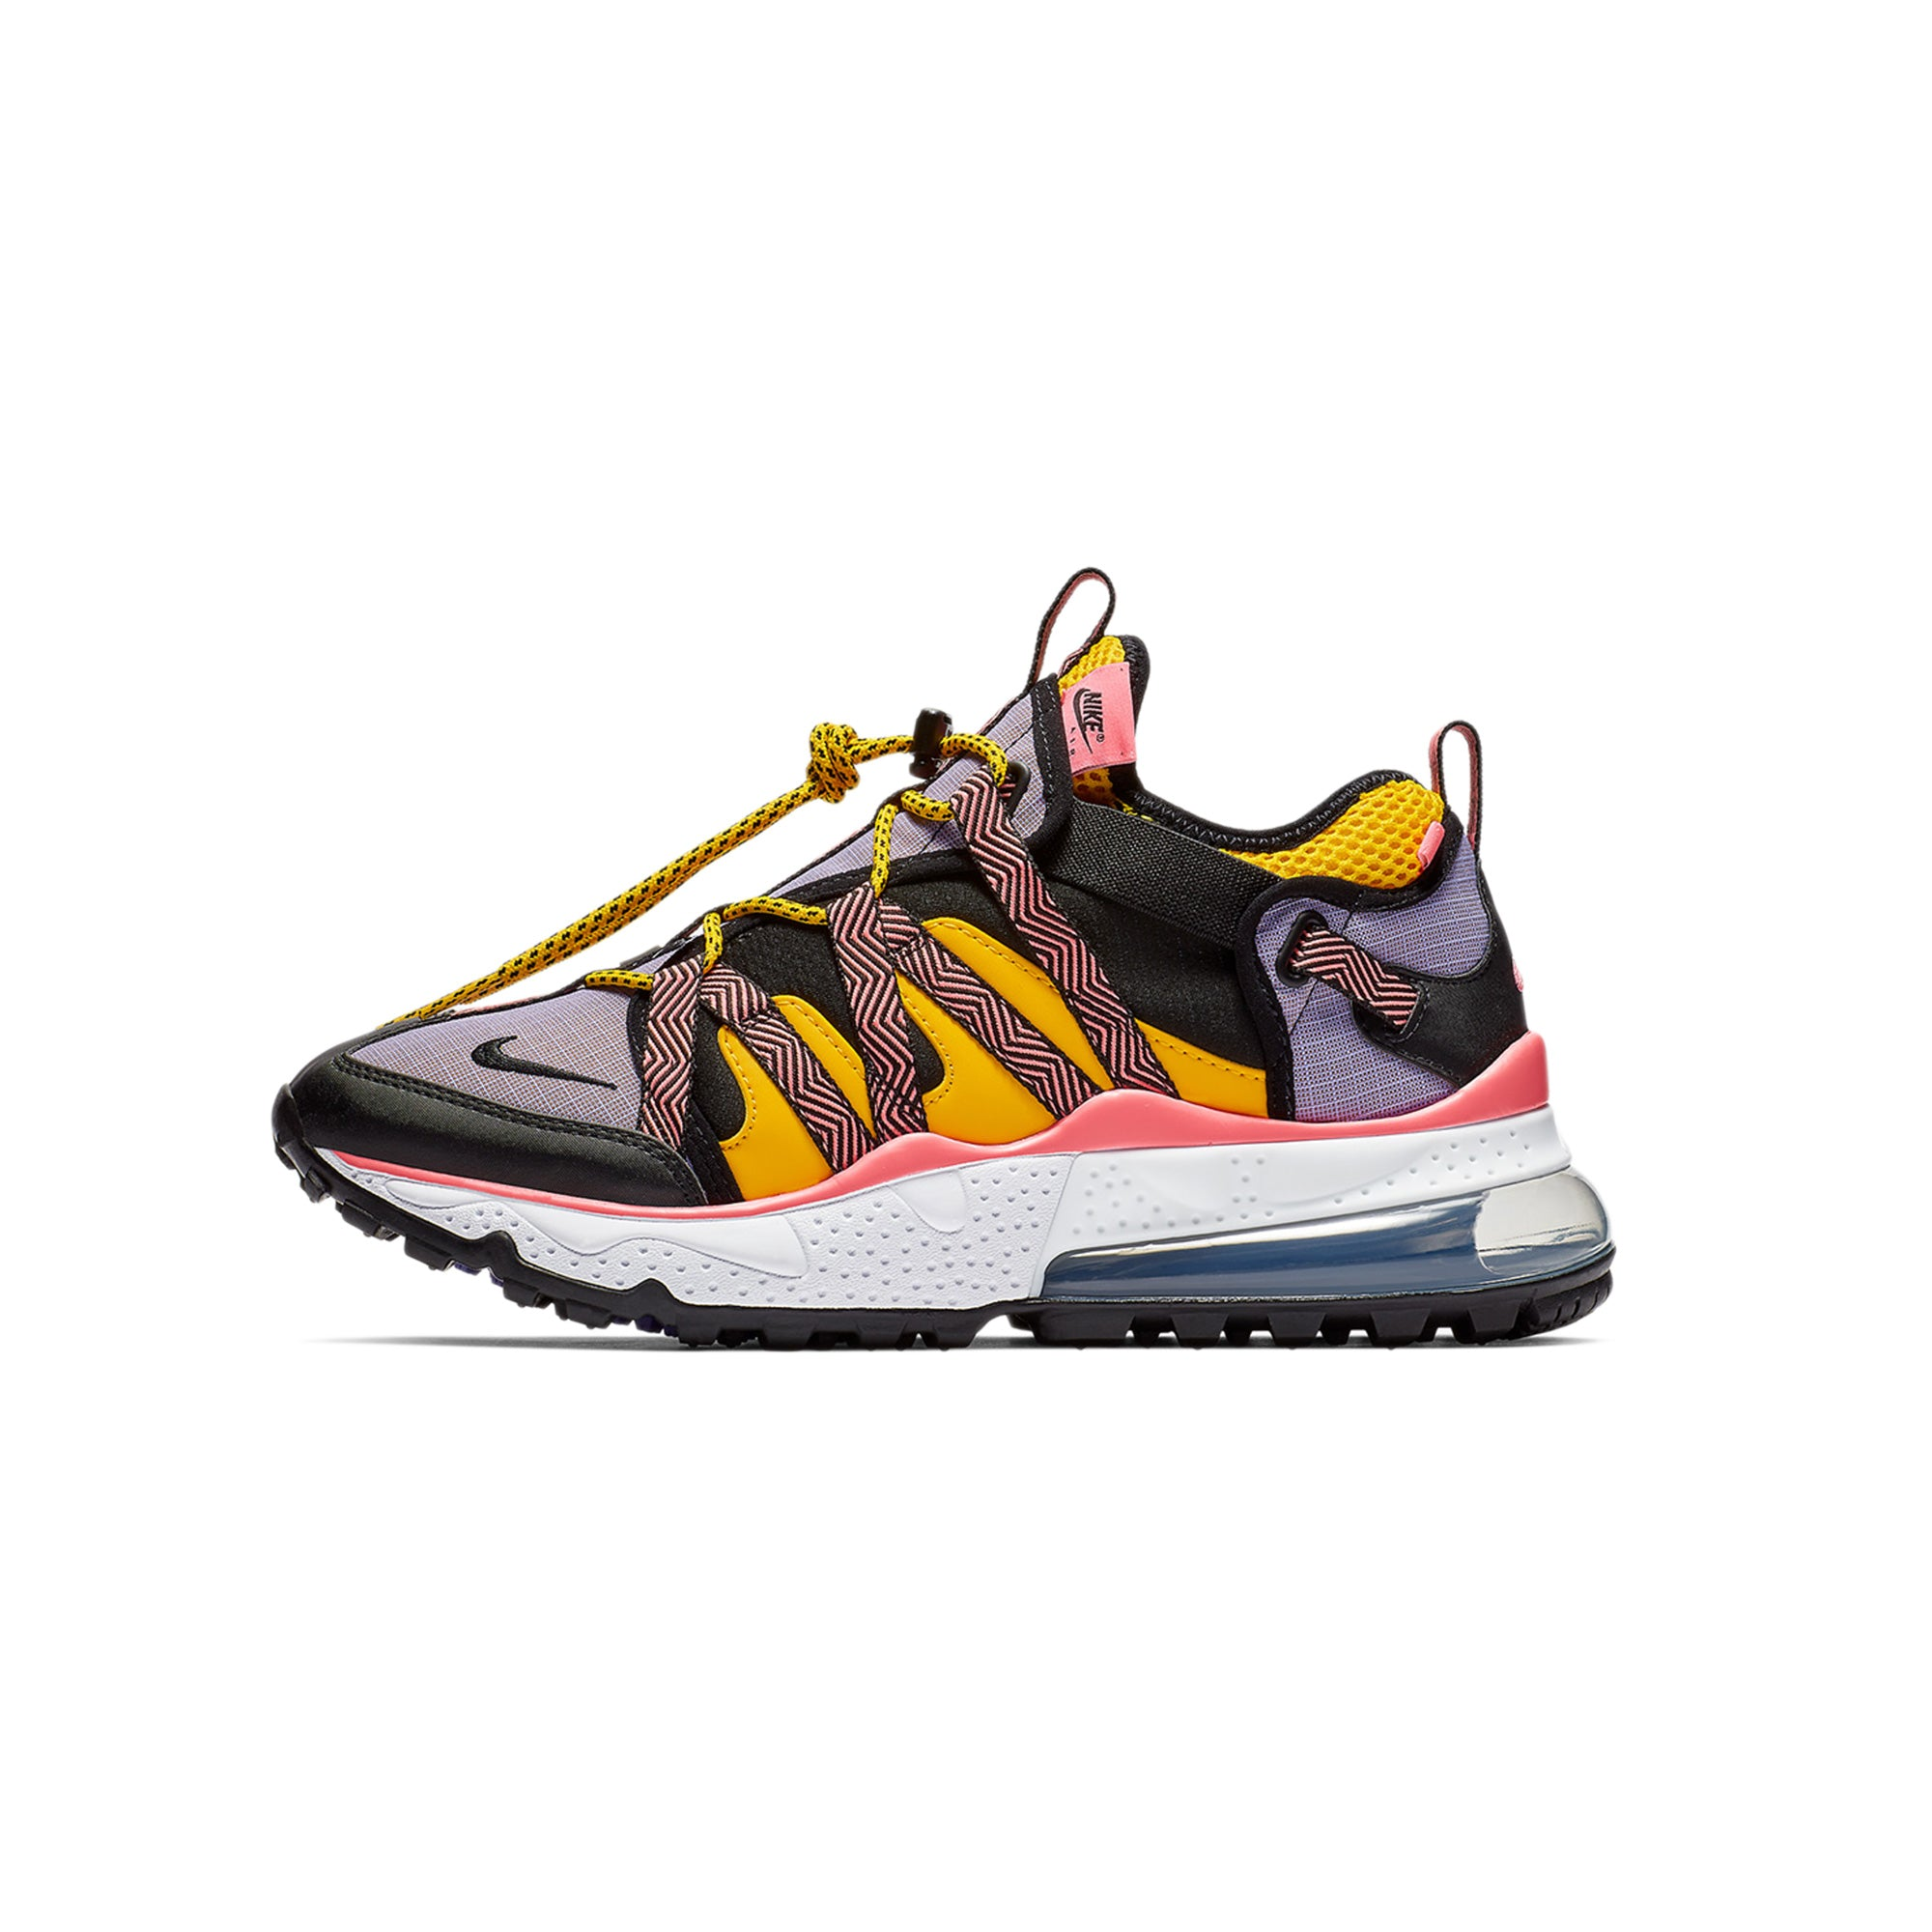 big sale 7ac40 81cfc Nike Air Max 270 Bowfin [AJ7200-004]